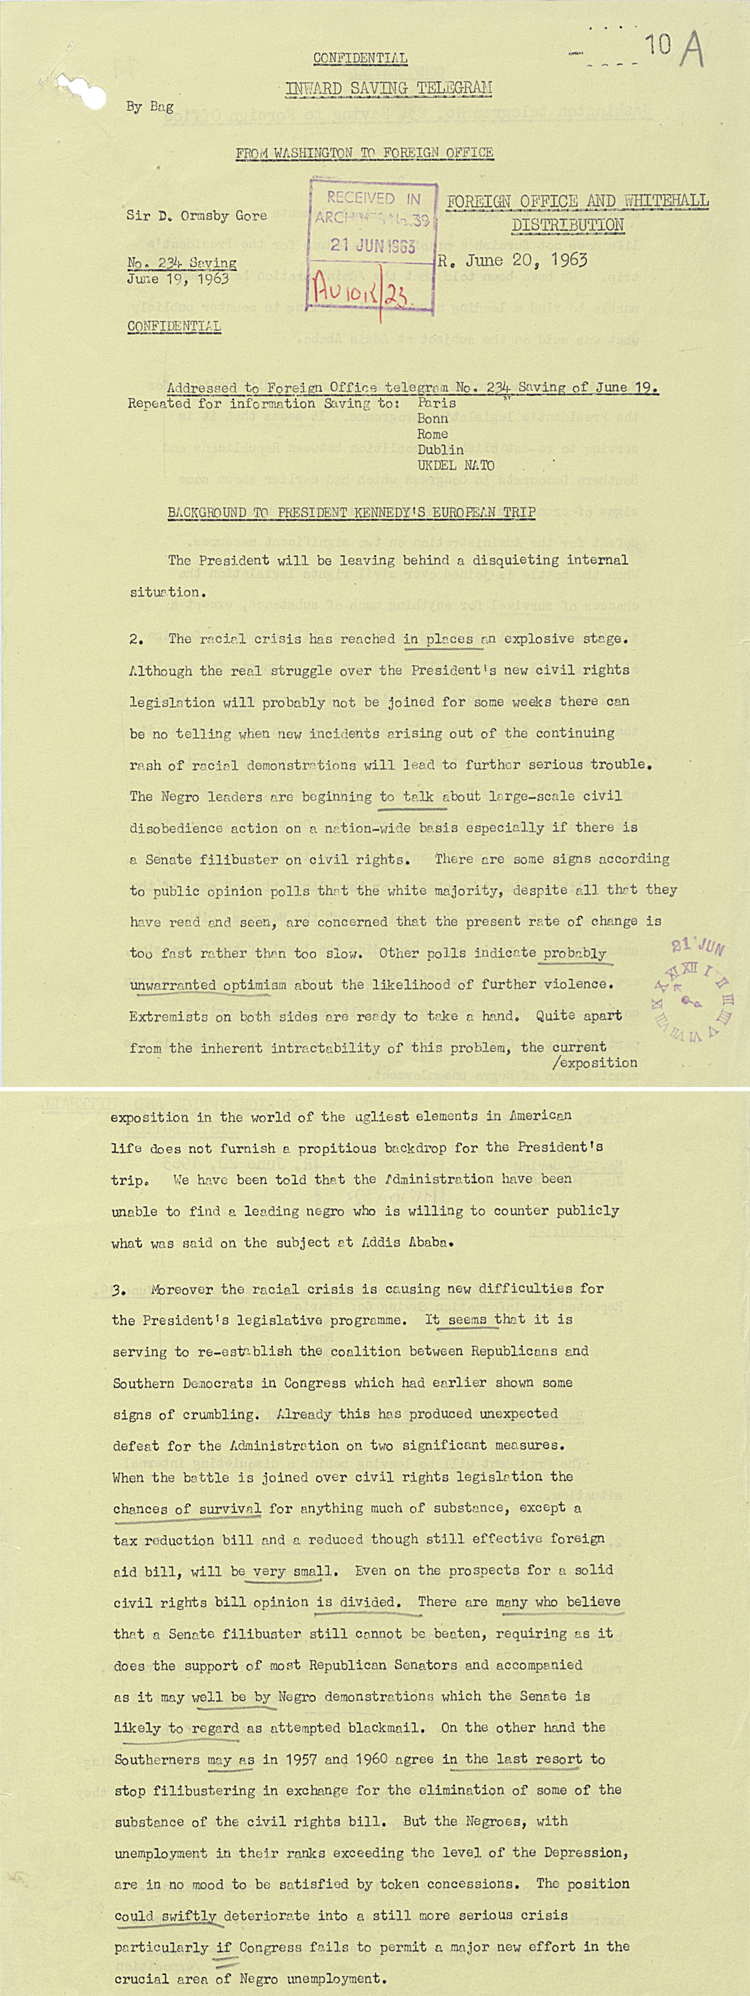 Telegram from UK Ambassador in Washington (David Ormsby Gore) to Foreign Office, 20th June 1963 (FO 371/168411)